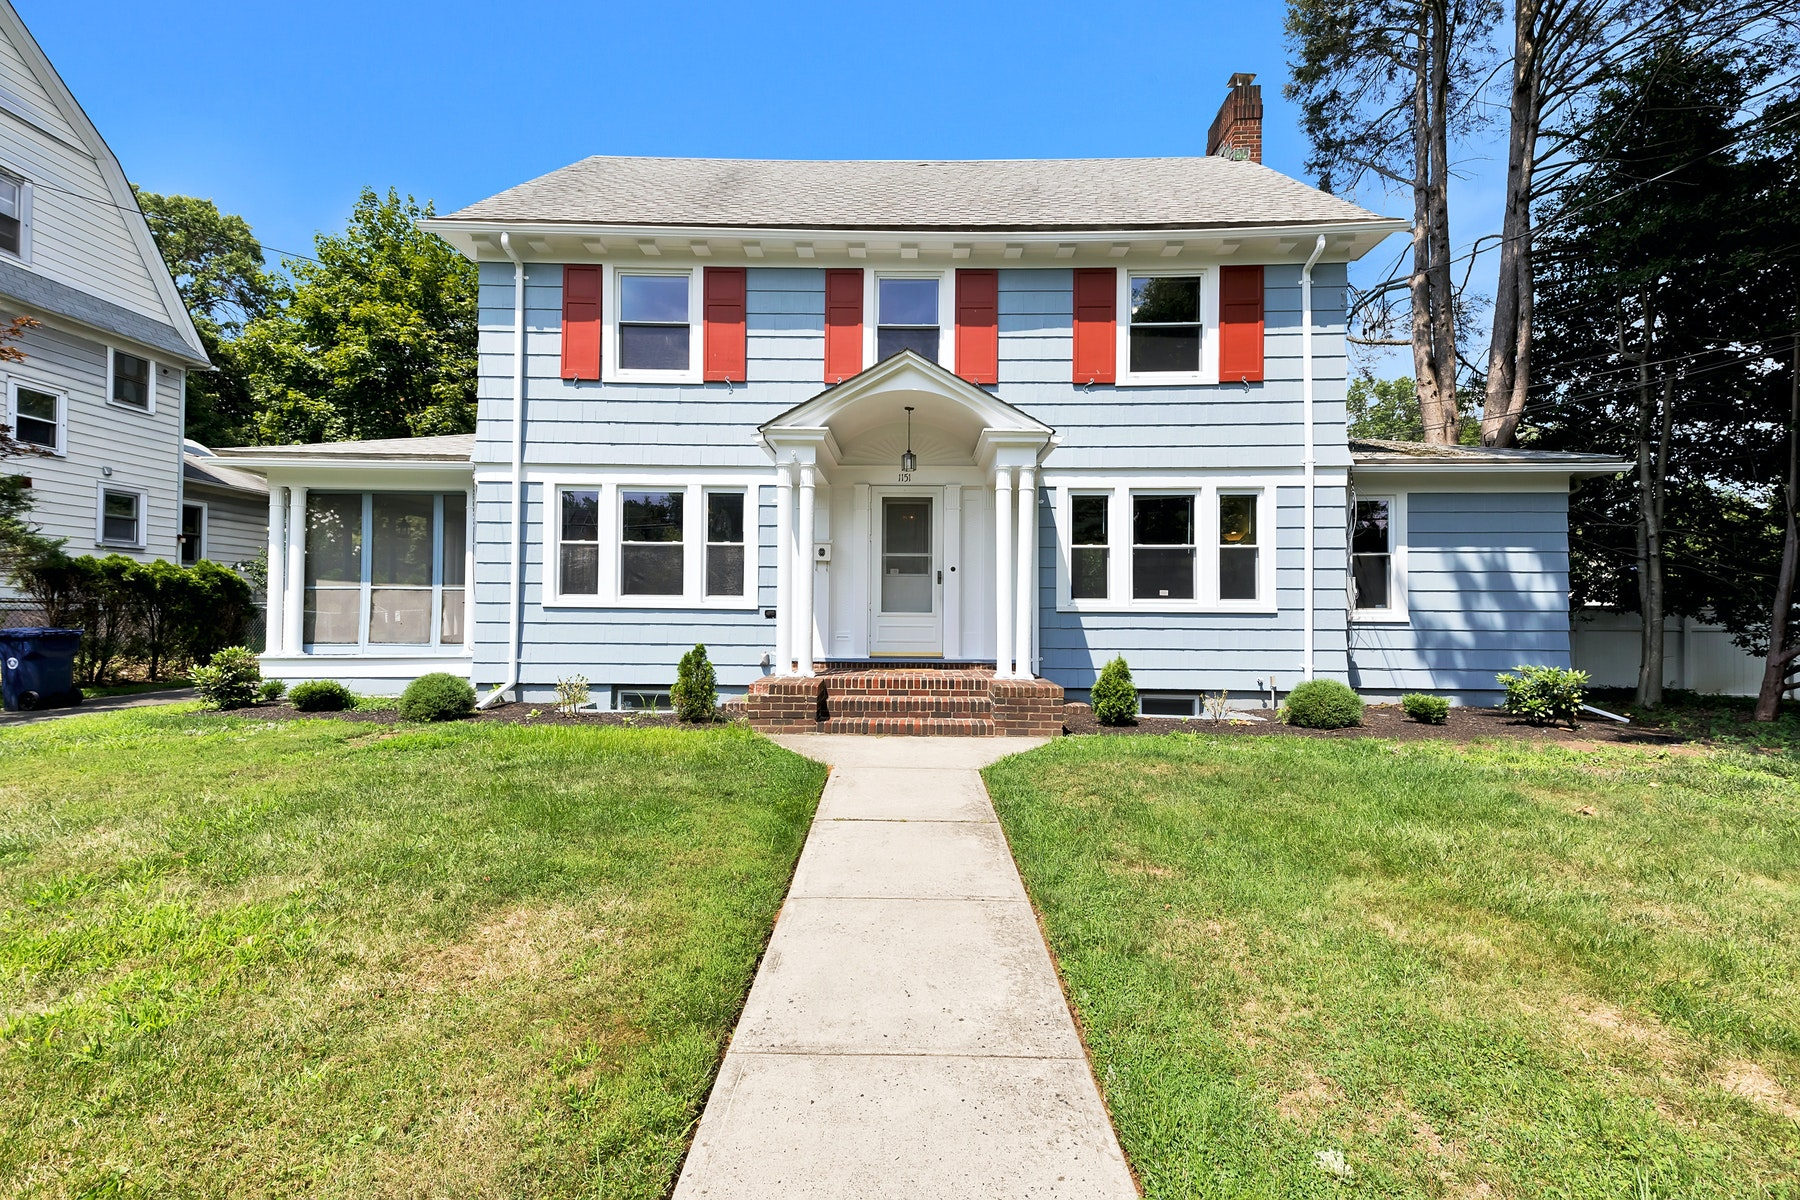 Single Family Homes for Active at A Classic Beauty 1151 Thornton Avenue Plainfield, New Jersey 07060 United States